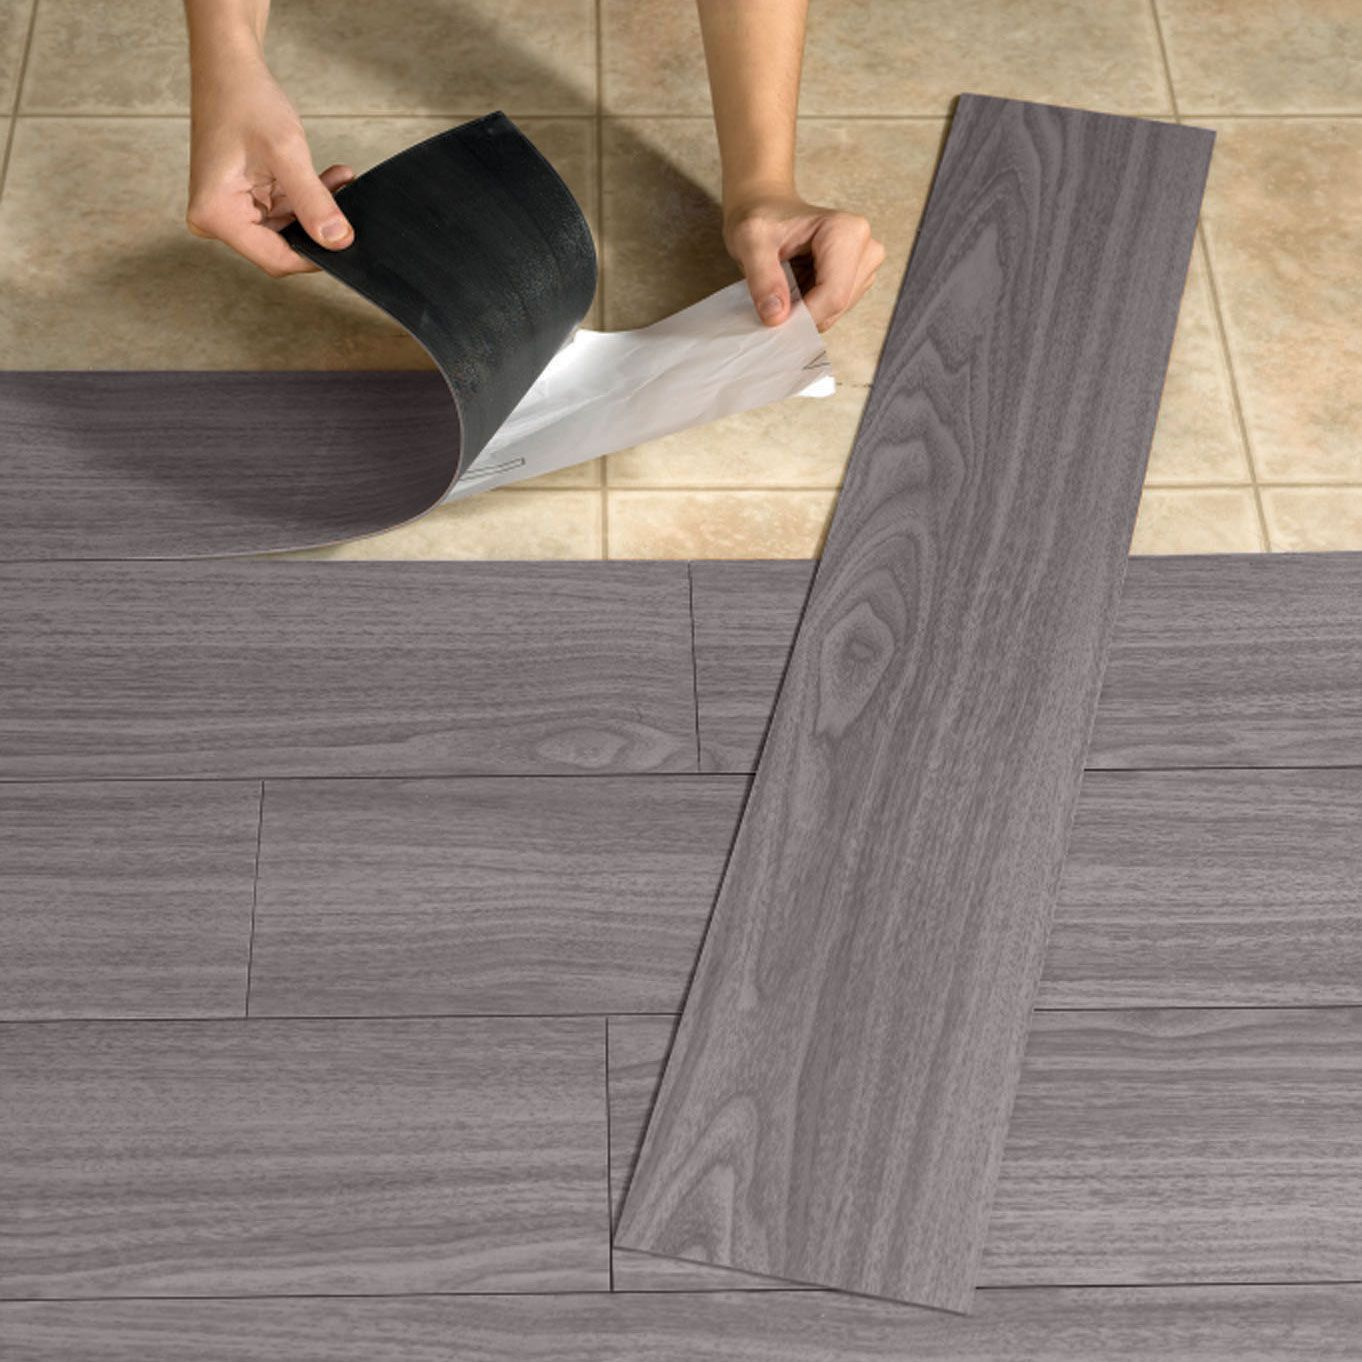 Peel And Stick Kitchen Floor Tile 37 Rv Hacks That Will Make You A Happy Camper For The Campers